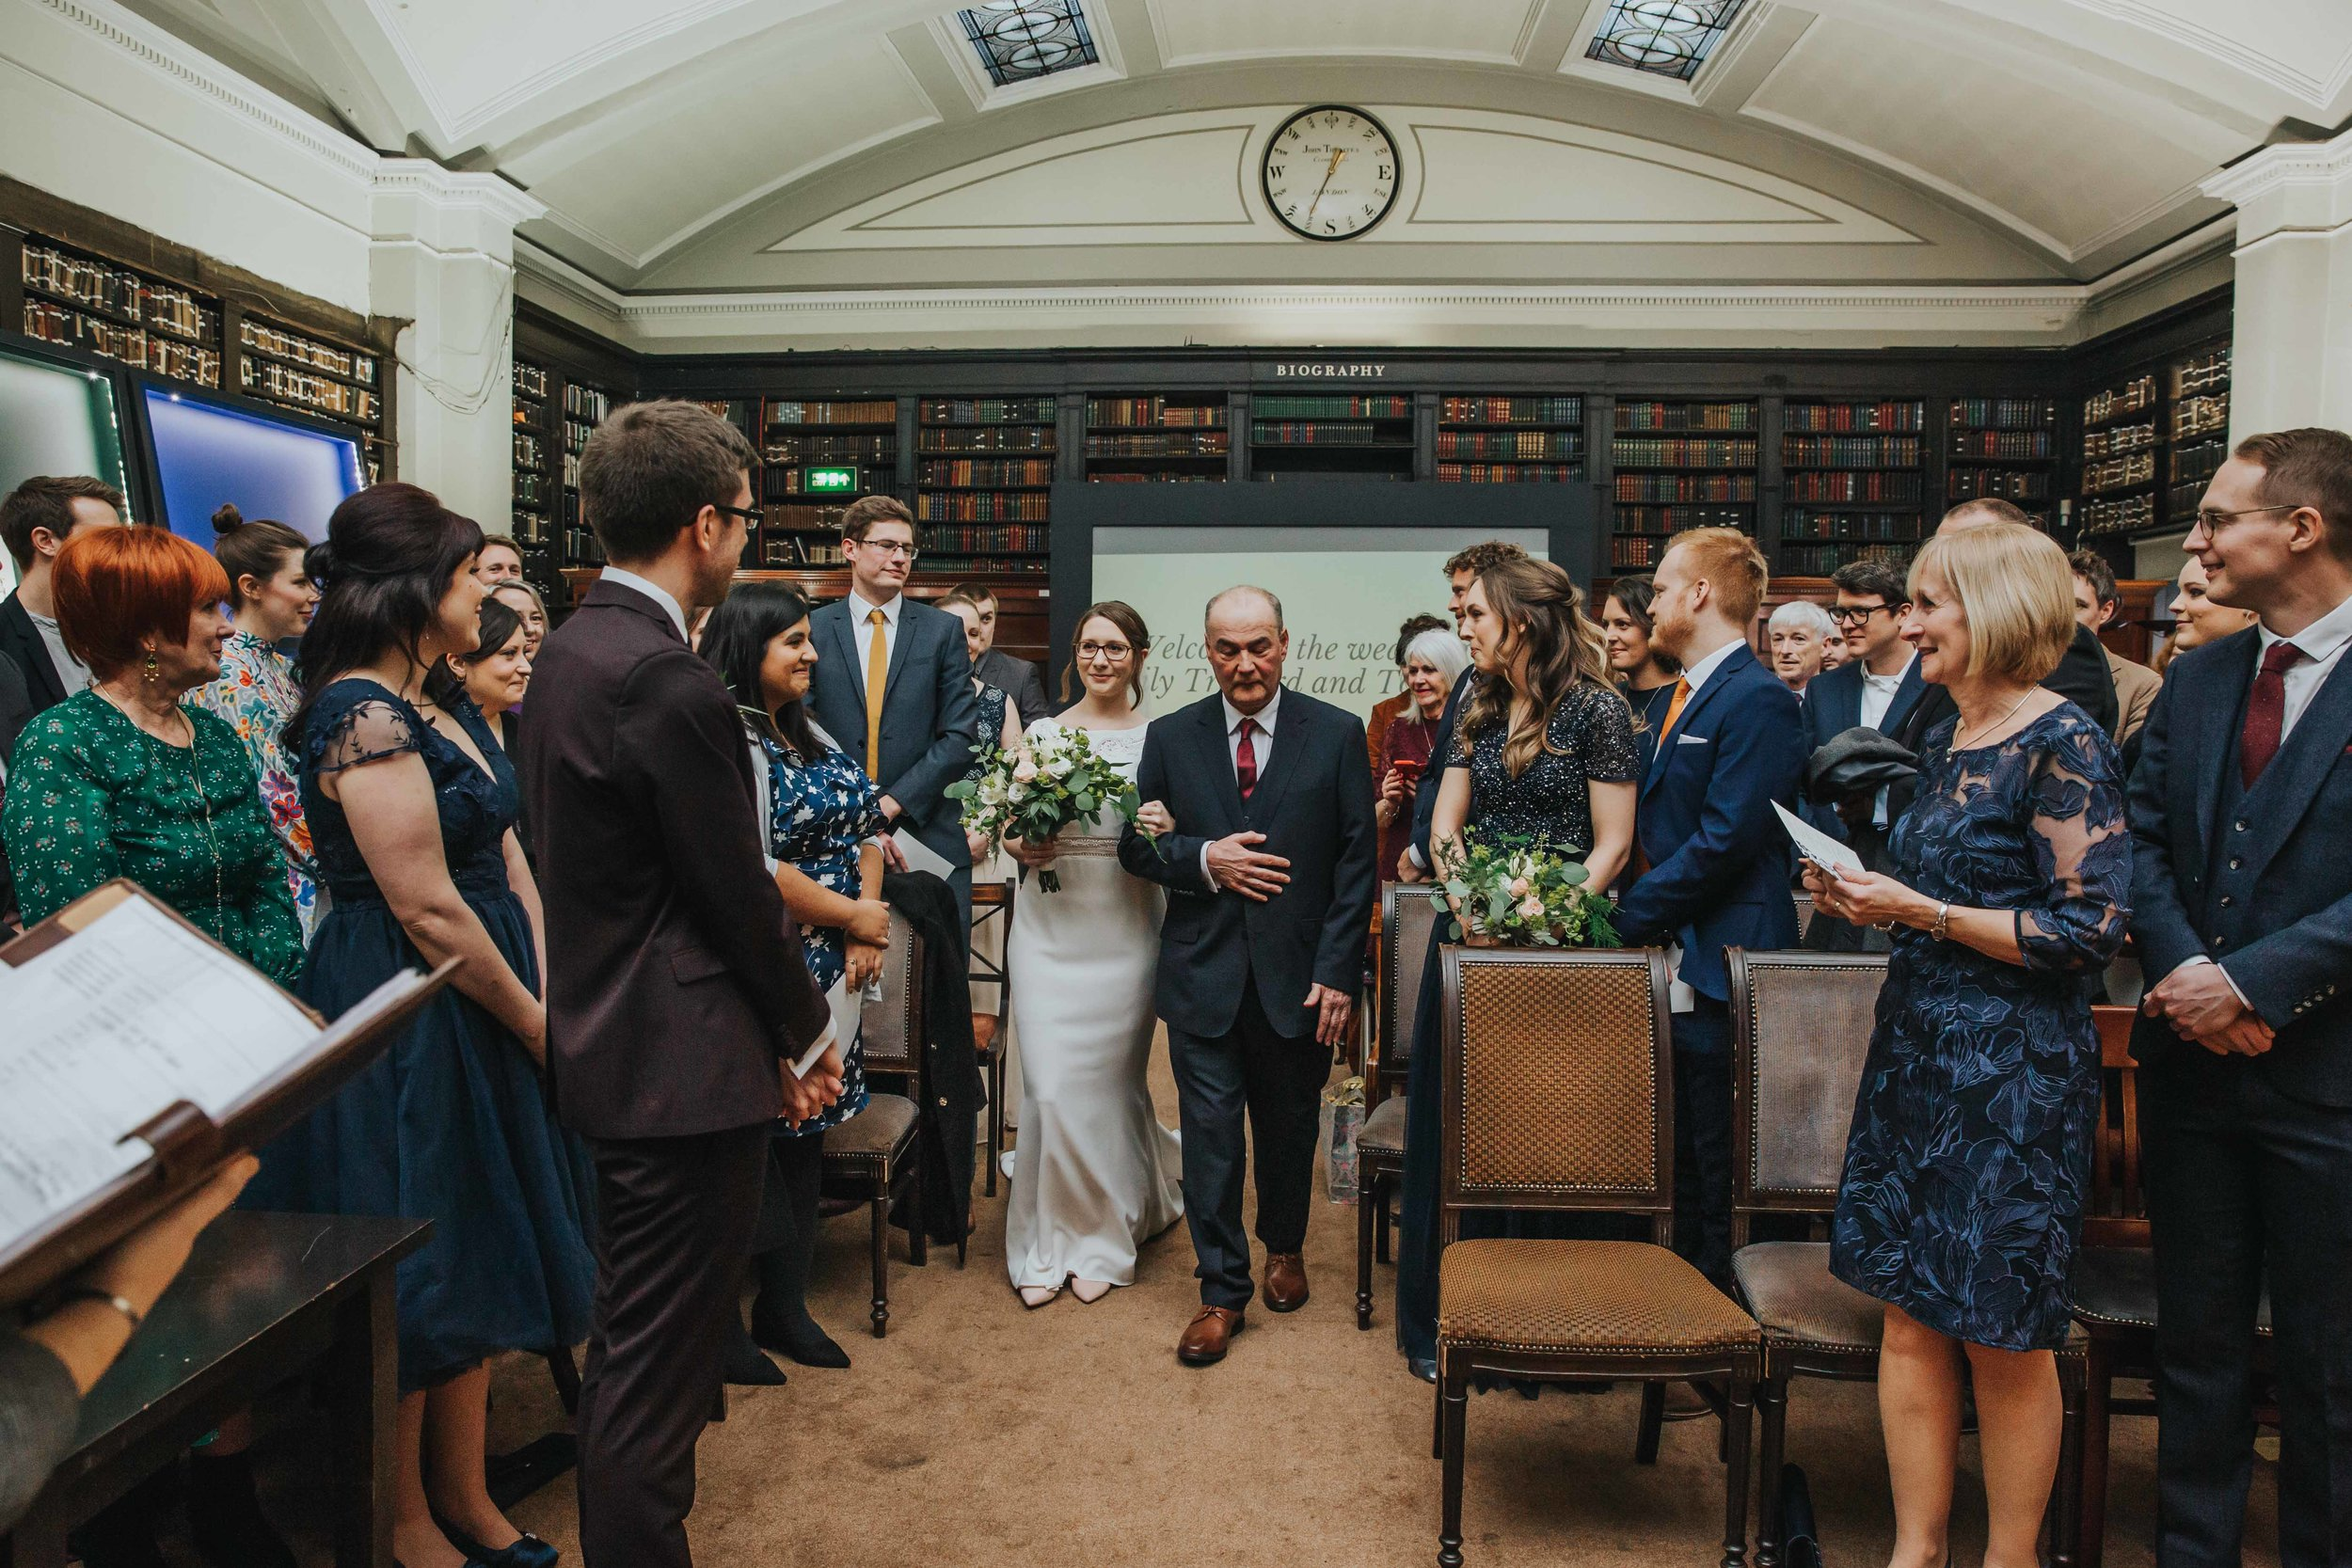 The Portico Library Manchester wedding ceremony